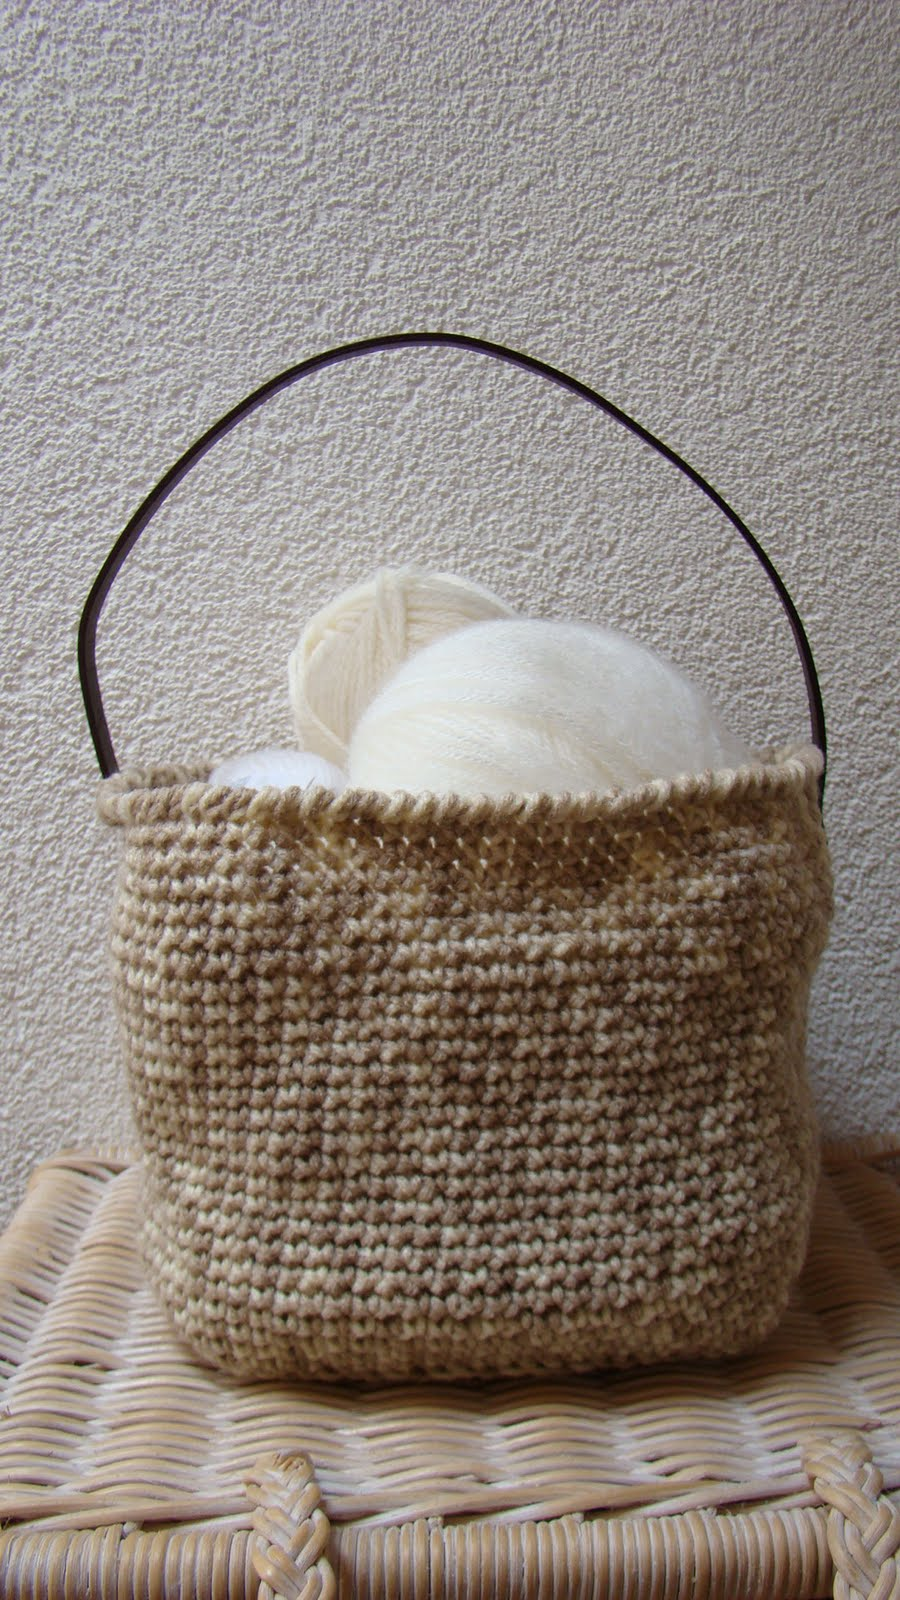 Crochet Basket : Roving Around Crafts: Crocheted basket